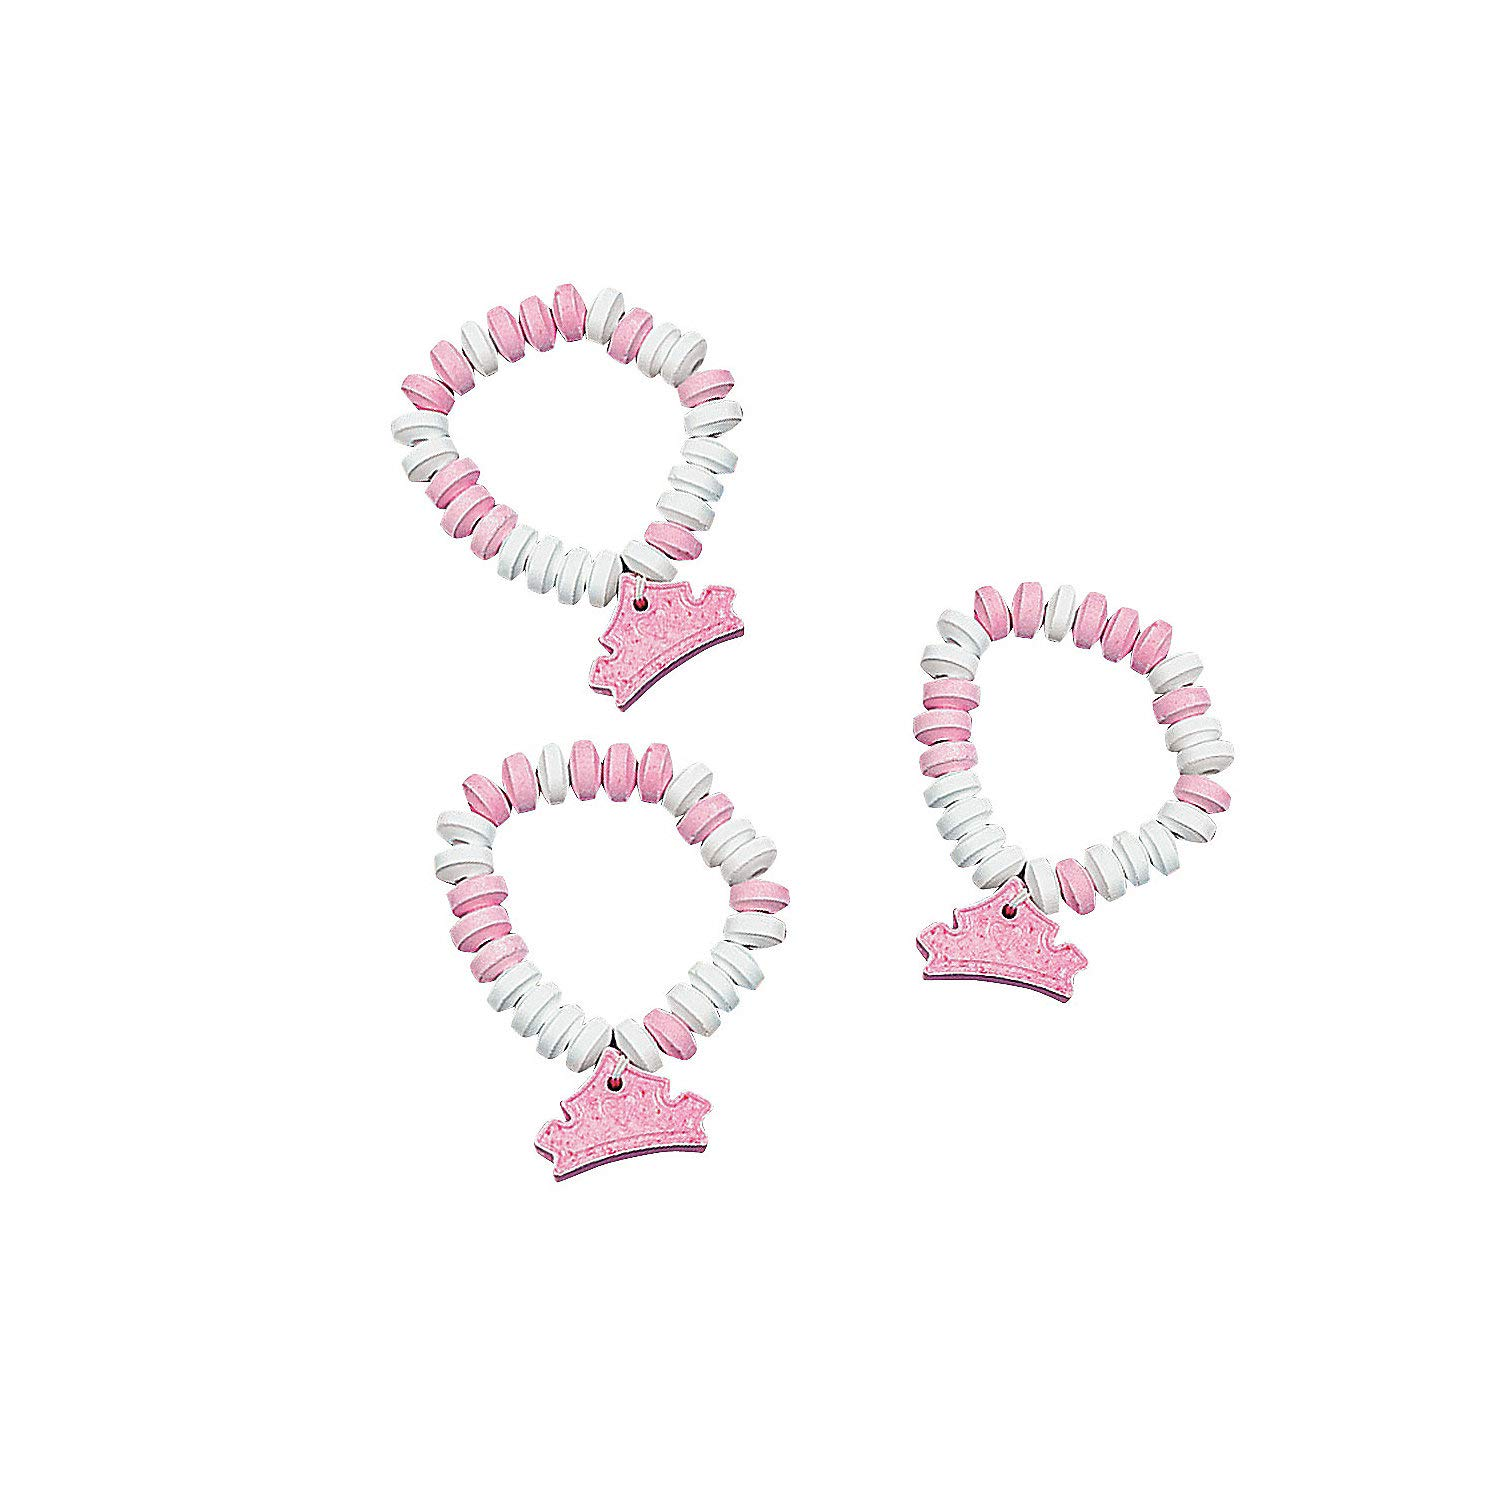 Princess Candy Bracelets with Charm (12 Pieces) Pink and White - Stretchable